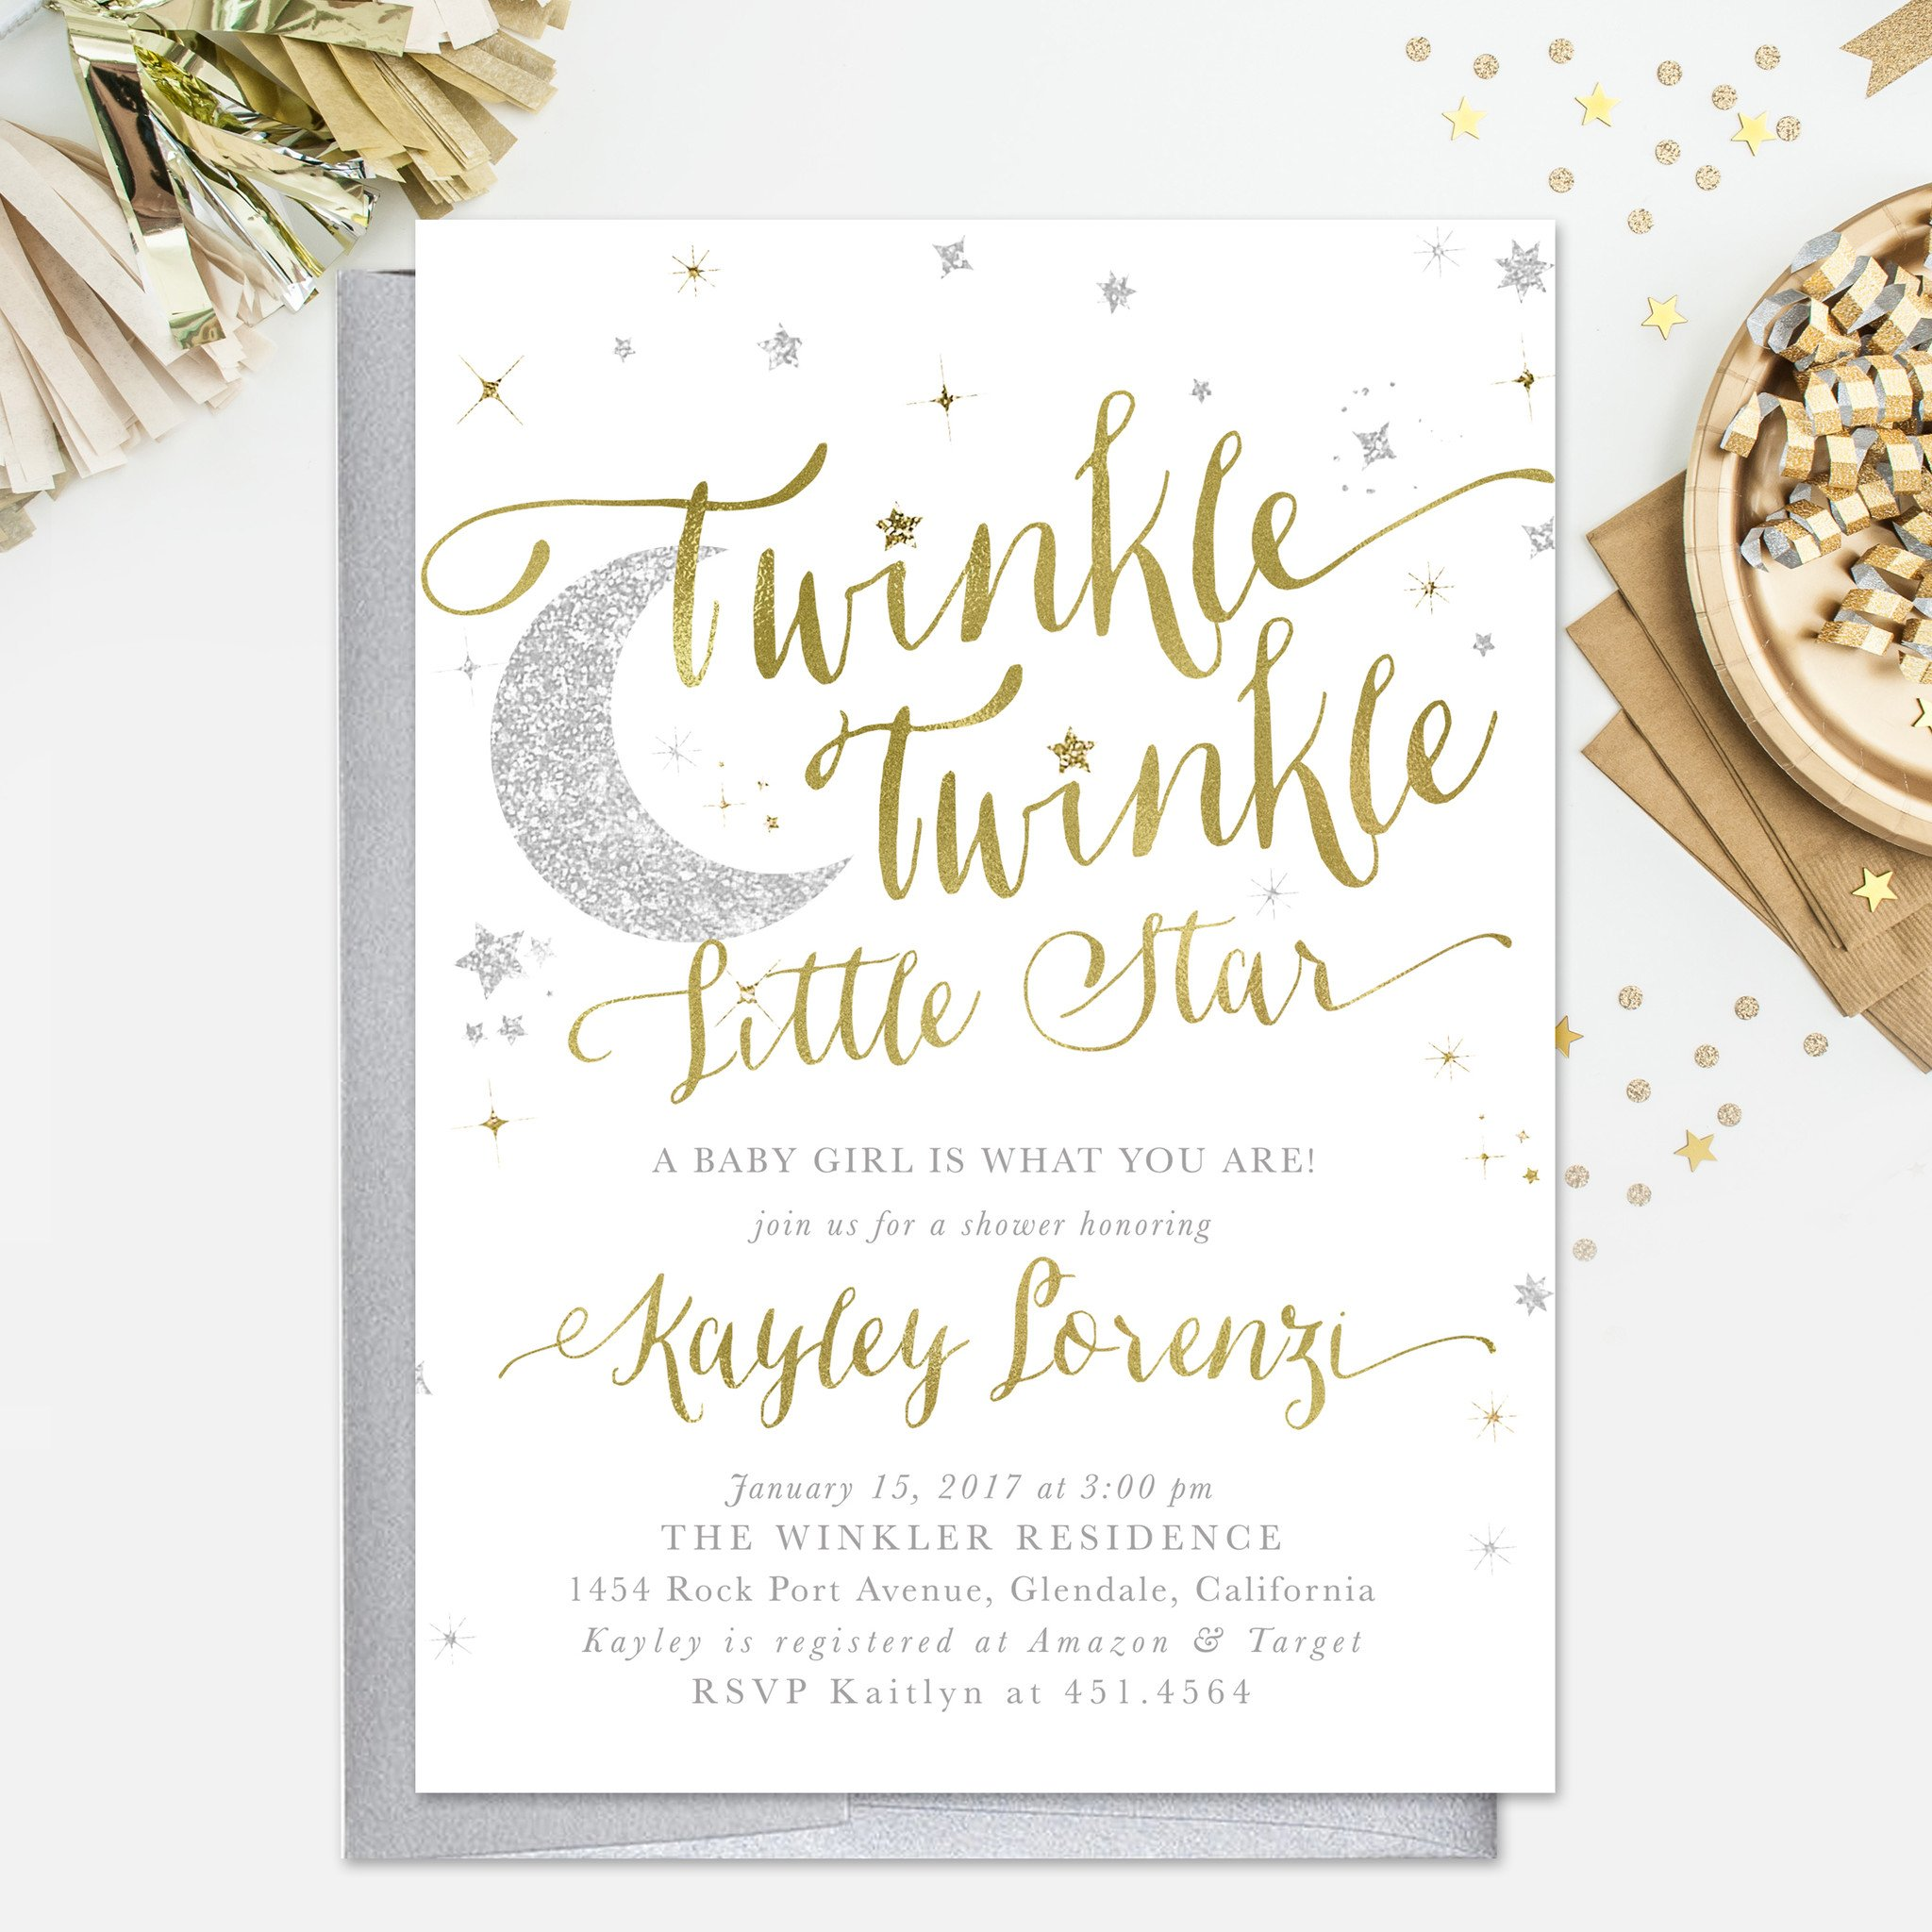 Full Size of Baby Shower:baby Shower Invitations For Boys Homemade Baby Shower Decorations Baby Shower Ideas Nursery Themes For Girls Baby Shower Menu Homemade Baby Shower Decorations All Star Baby Shower Girl Baby Shower Plates